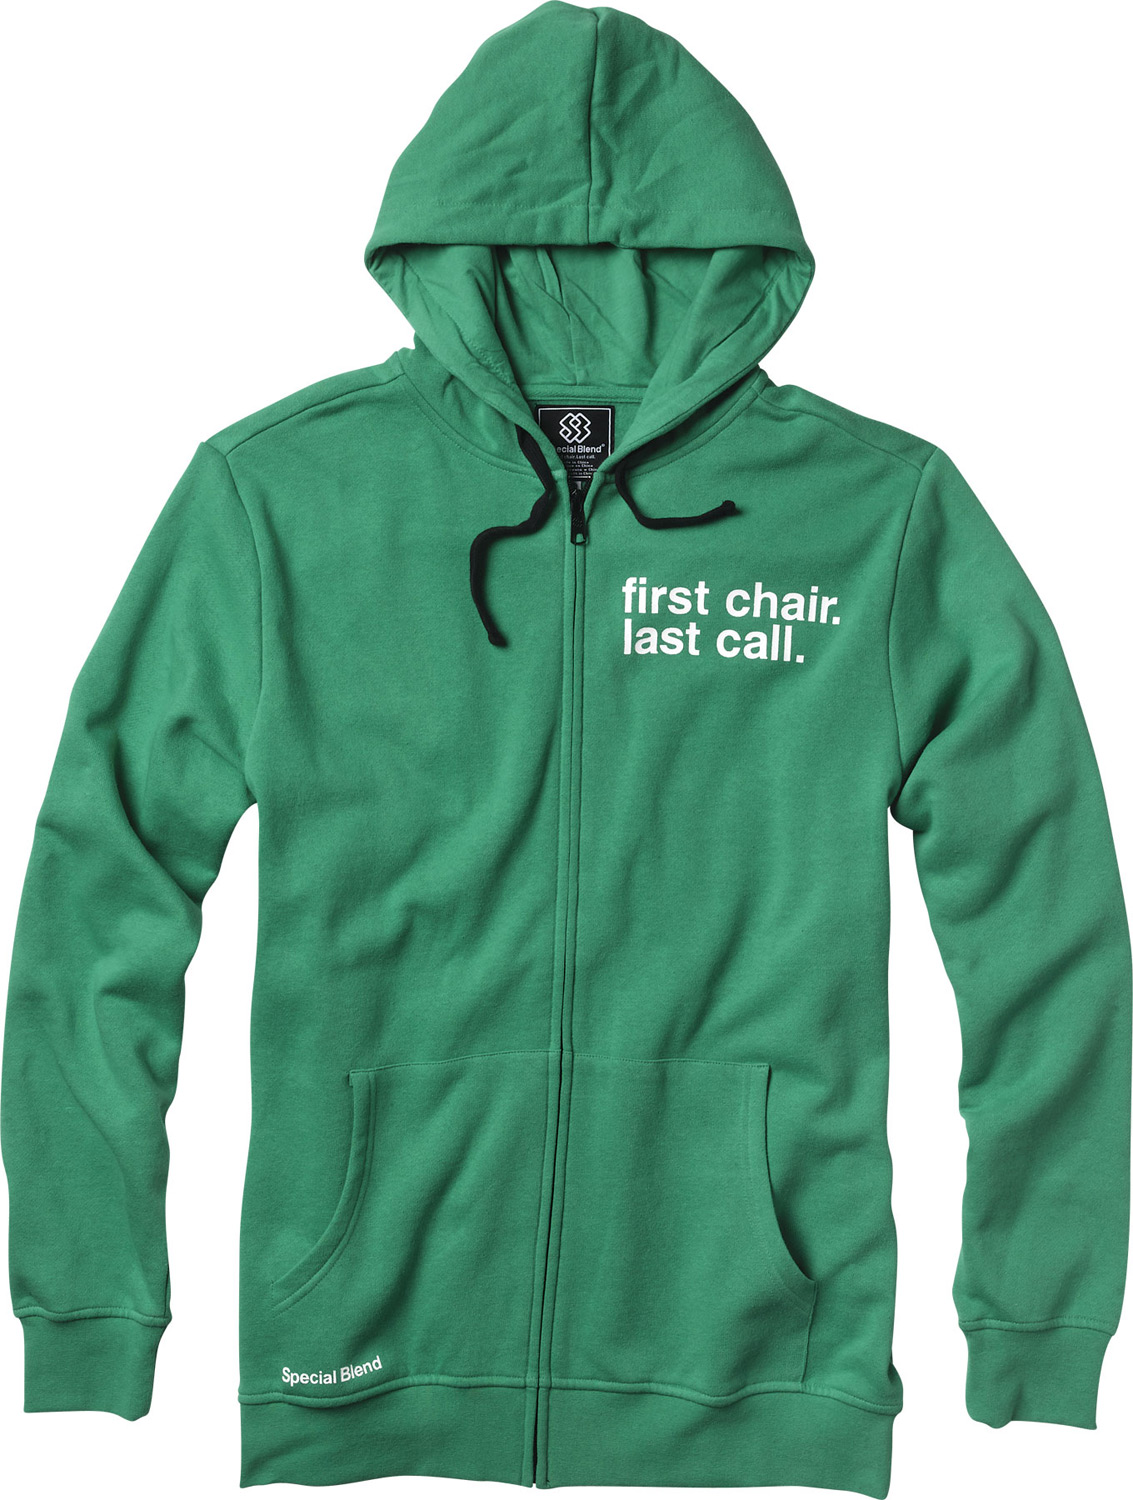 Key Features of the Special Blend First Chair Last Call Zip Hoodie: Full zip hooded fleece Freedom fit 80% cotton 20% polyester, 300 gms. Screenprint art - $27.95